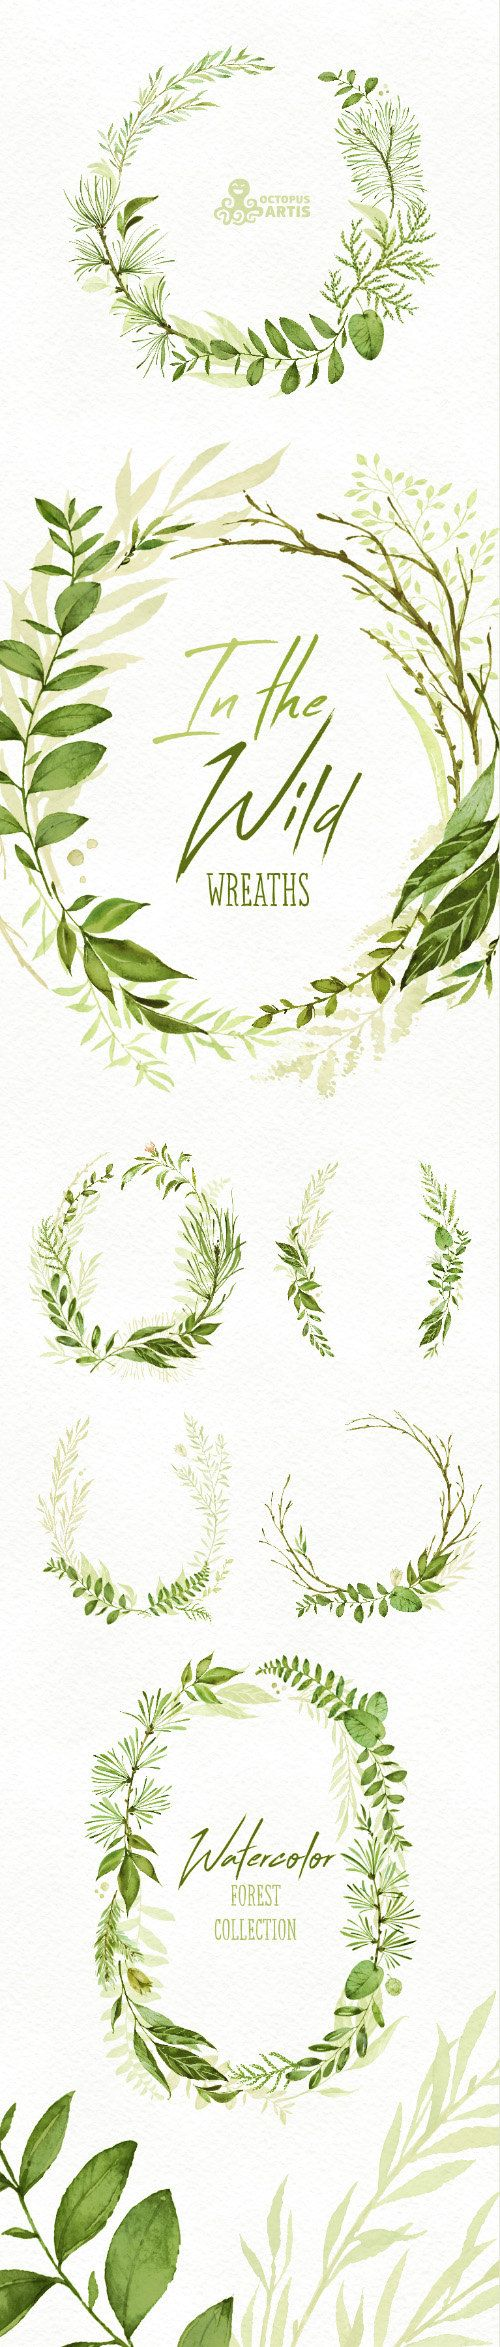 In the Wild. Watercolor floral wreaths branches by OctopusArtis